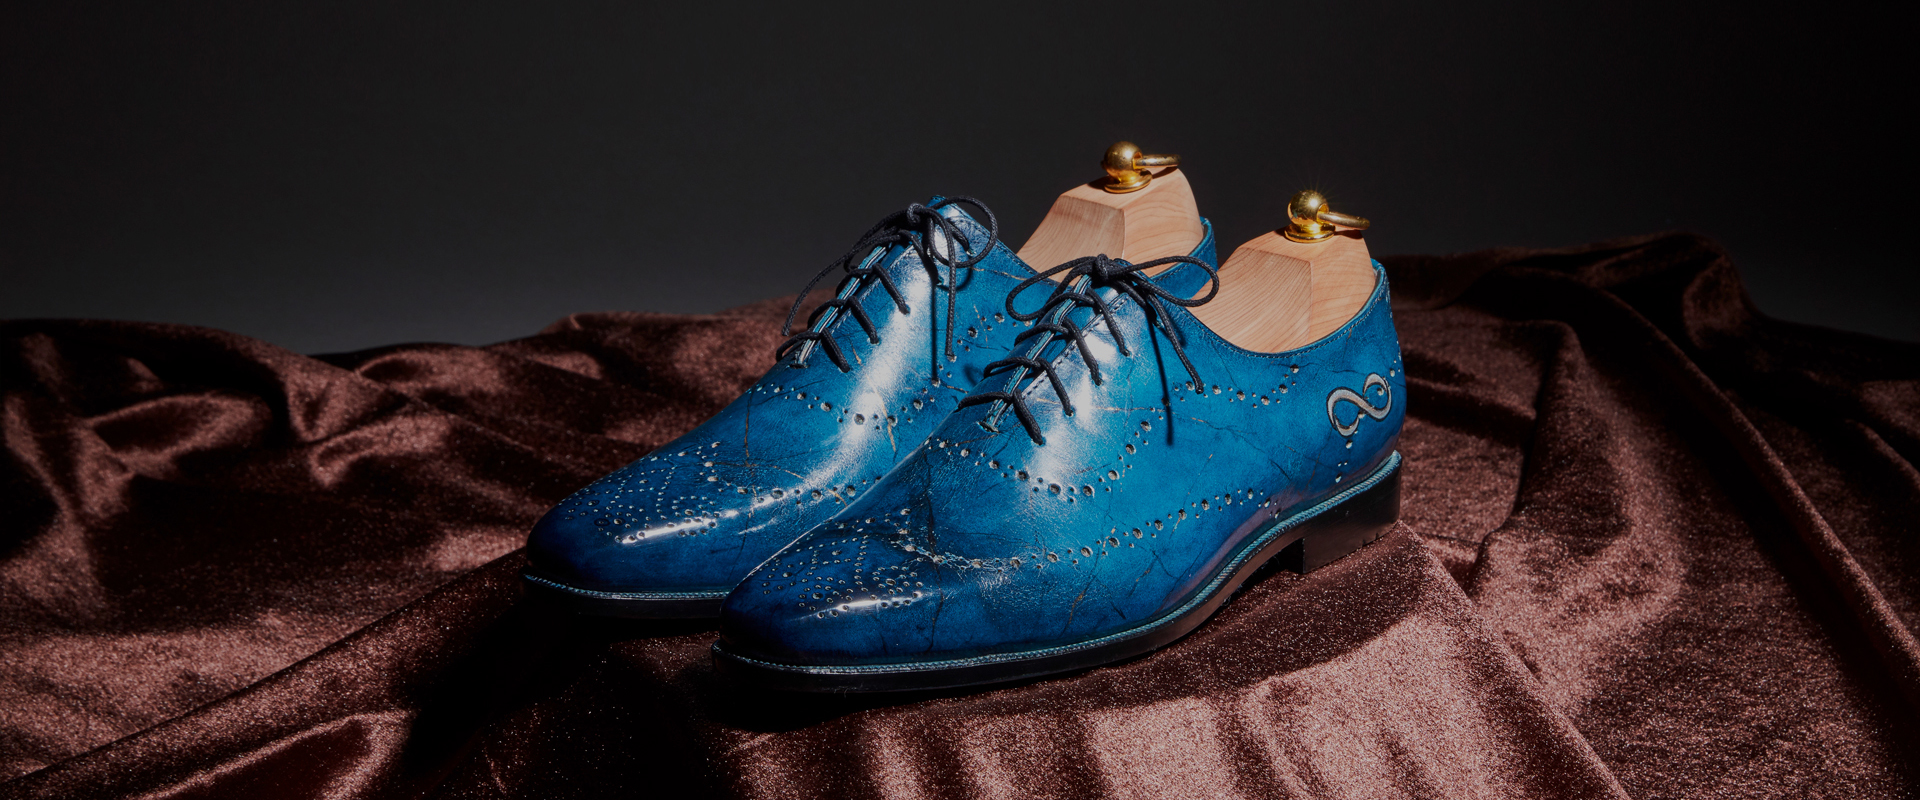 Patina Shoes | LUSSO